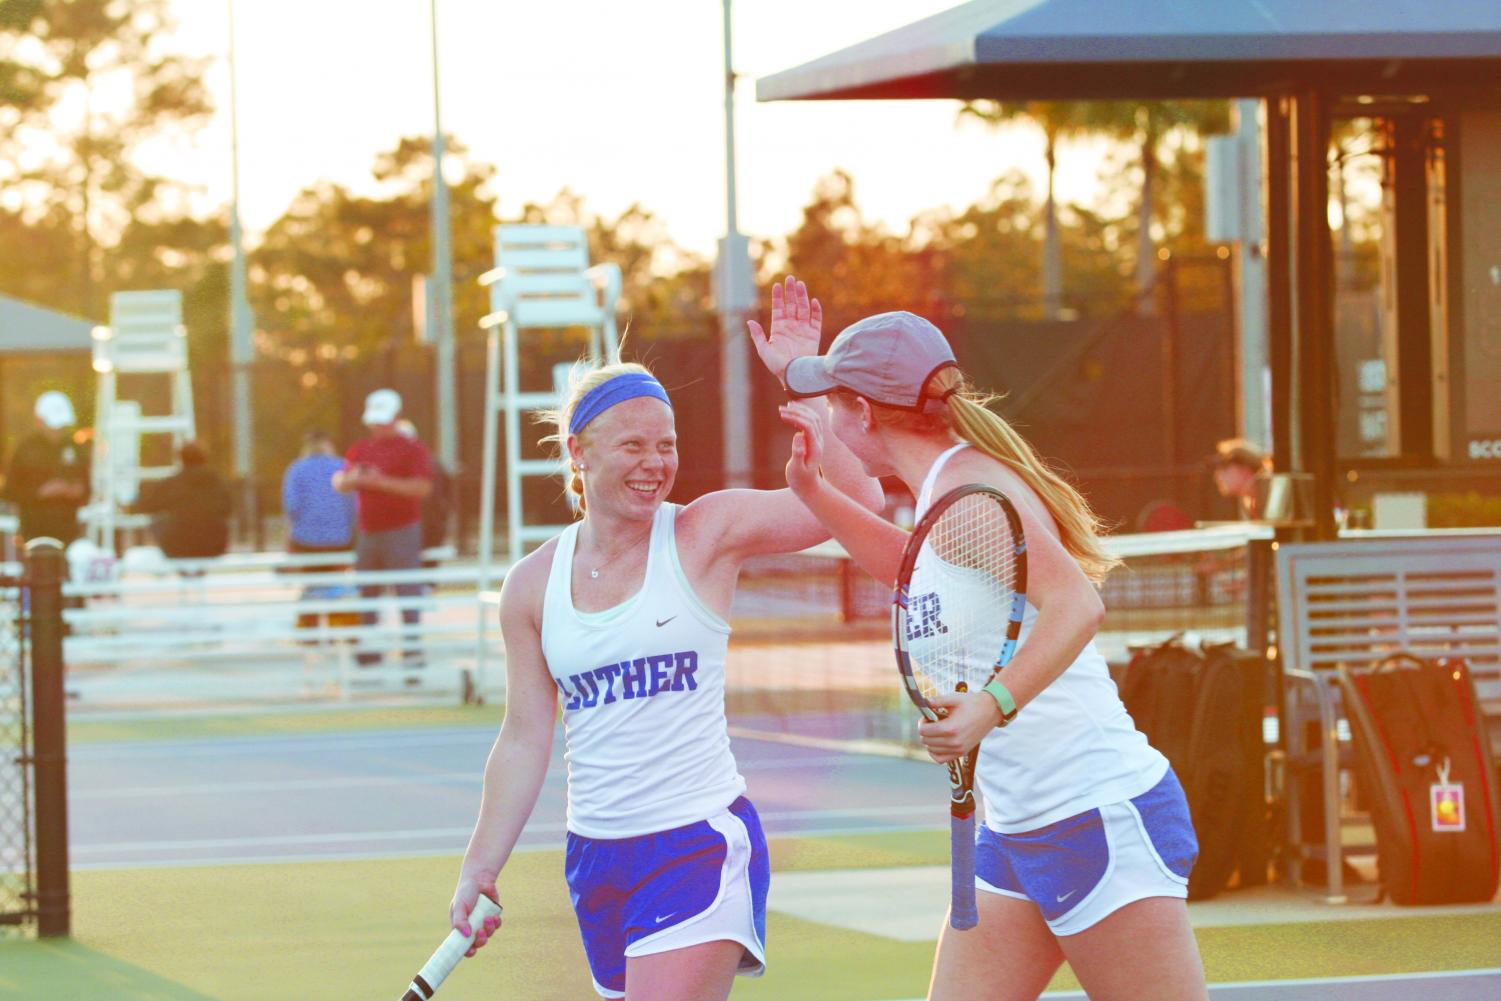 Ellie Hemker ('20) and Megan Grimm ('22) high-five on the United States Tennis Assocation National Campus courts during games over spring break.